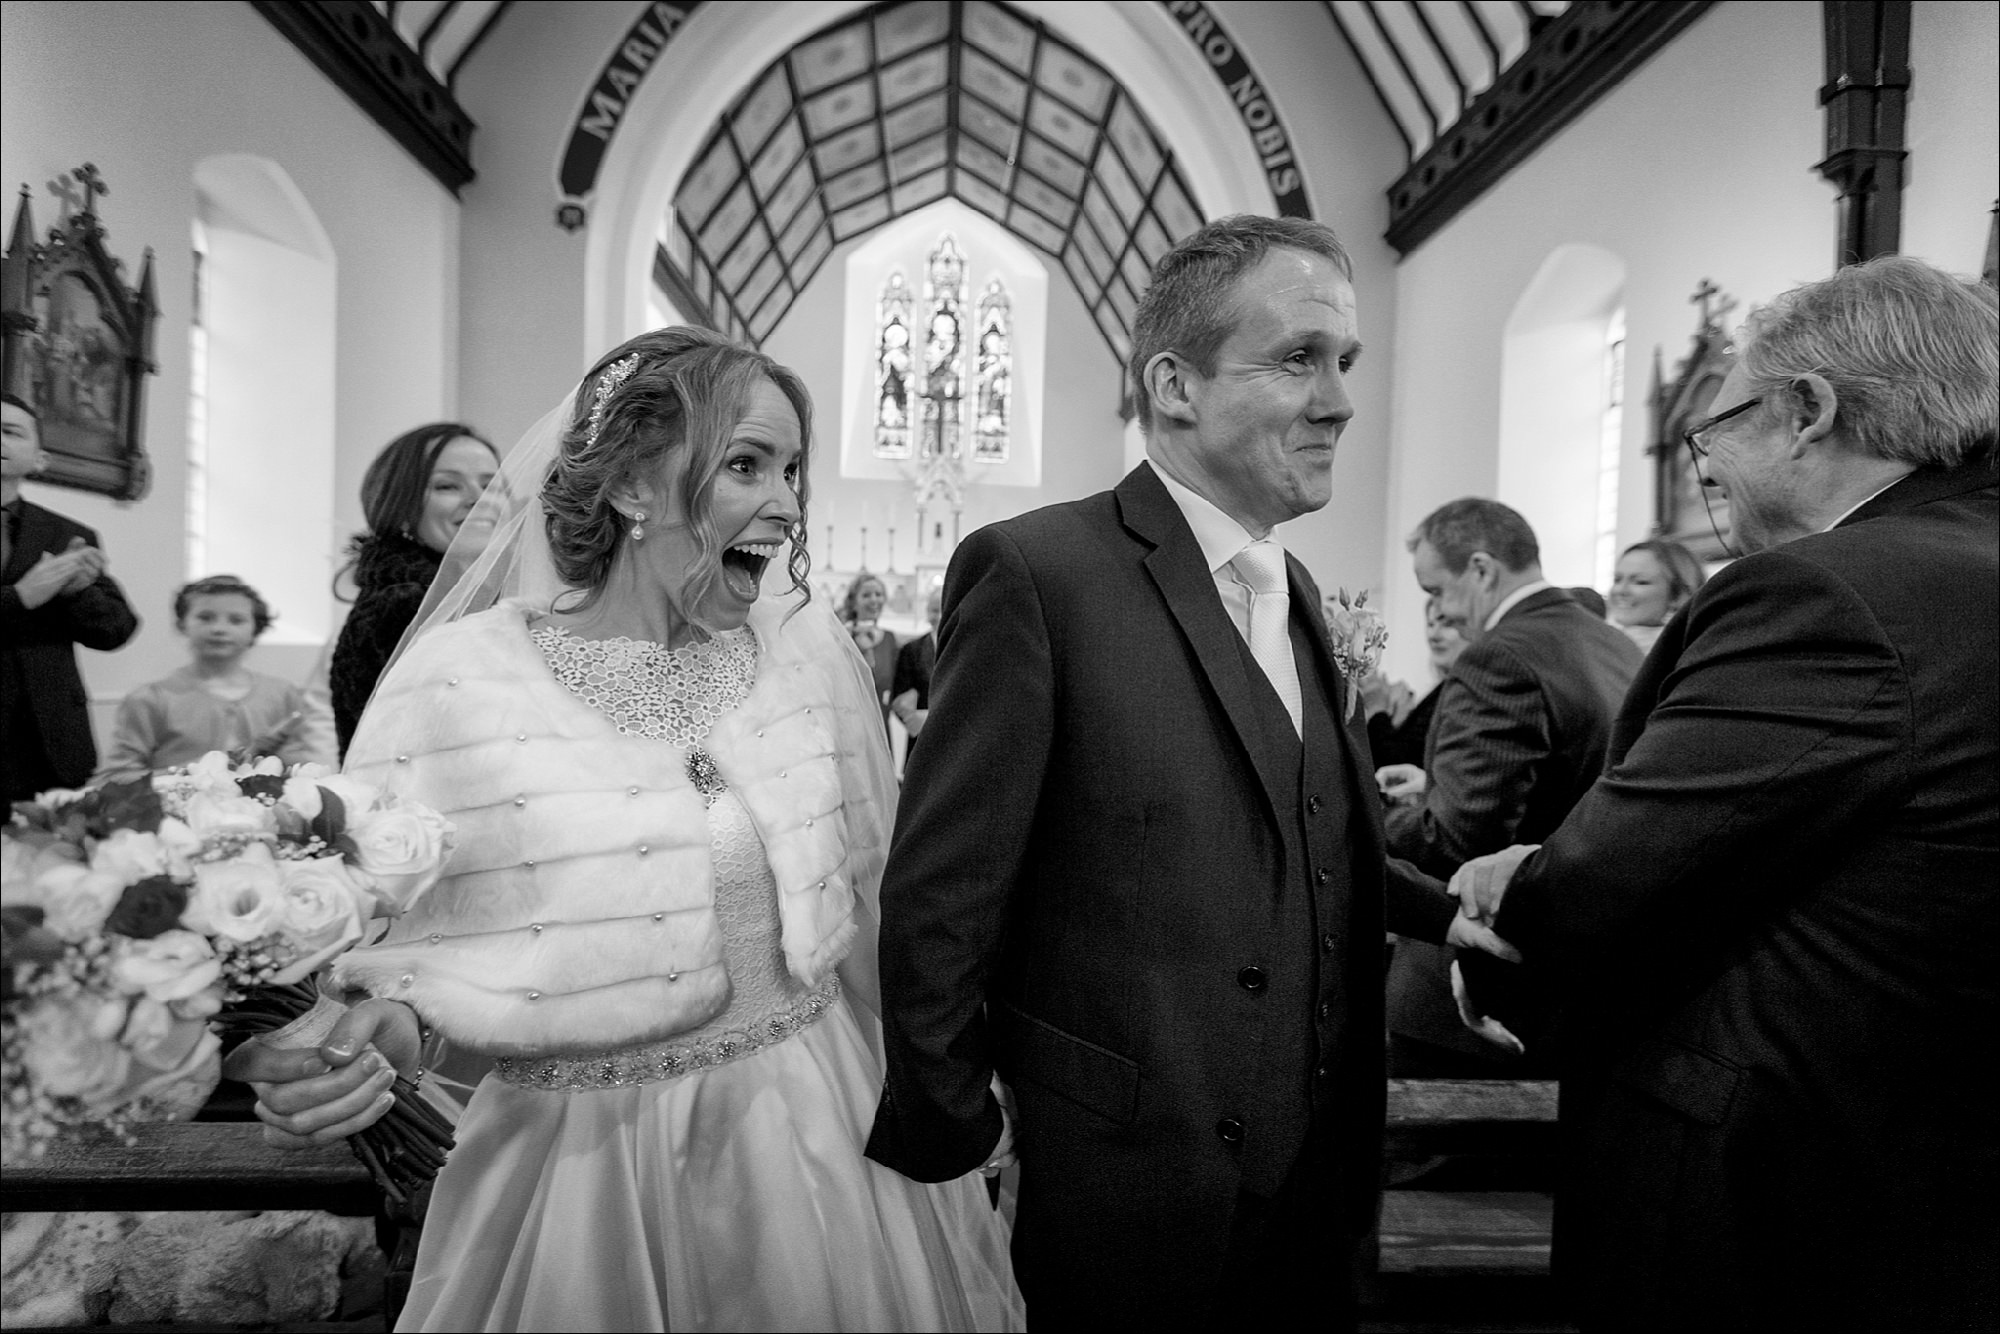 dublin wedding photographer david duignan photography tankardstown weddings slane rathfeigh church ireland 0028